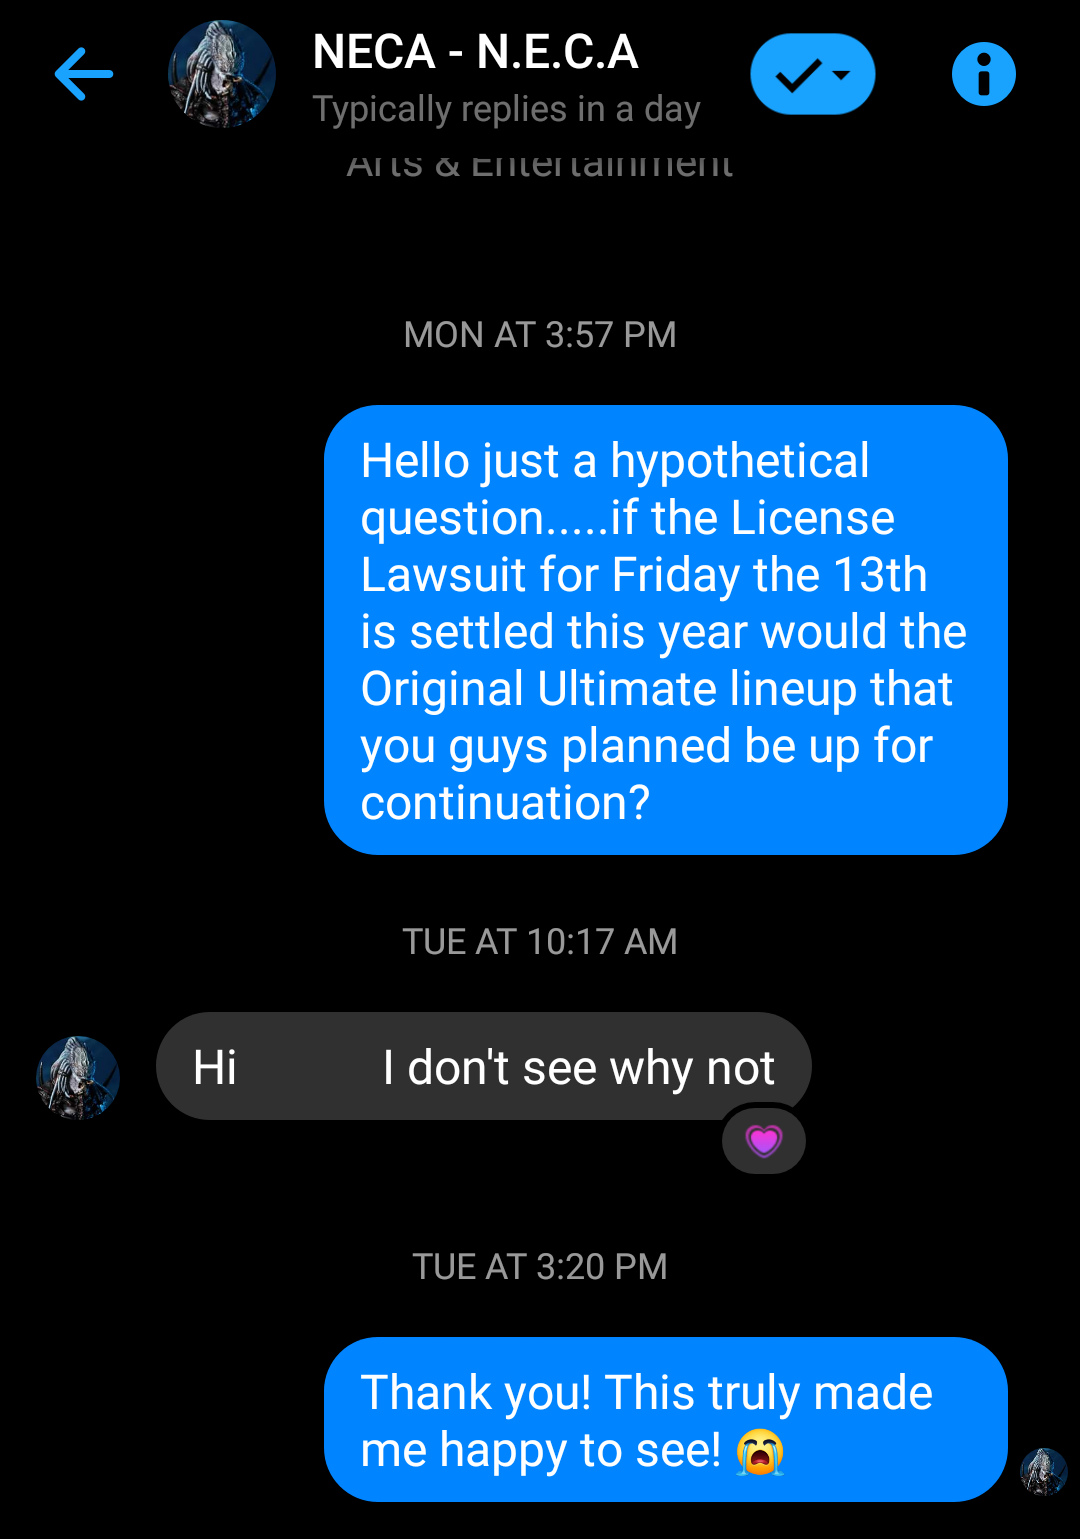 NECA Toys response to a continuation of the Original Ultimate Jason Figures Line-Up If Lawsuit Ends Screen14